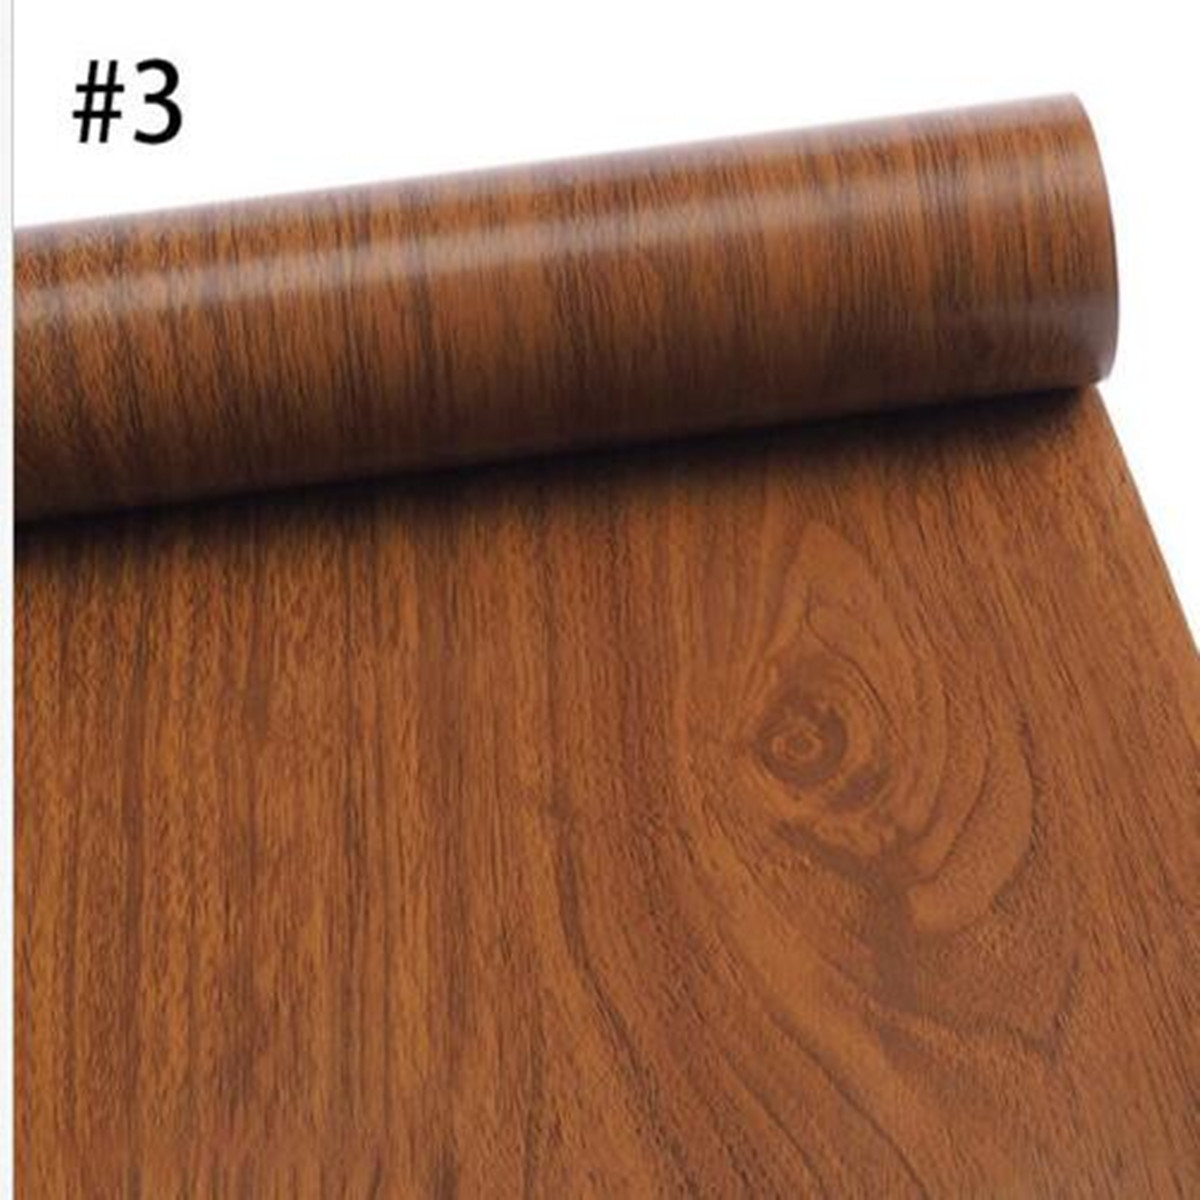 Delicieux Wood Grain Contact Paper Self Adhesive Vinyl Shelf Liner Covering For  Kitchen Countertop Cabinets Drawer Furniture Wall Decal